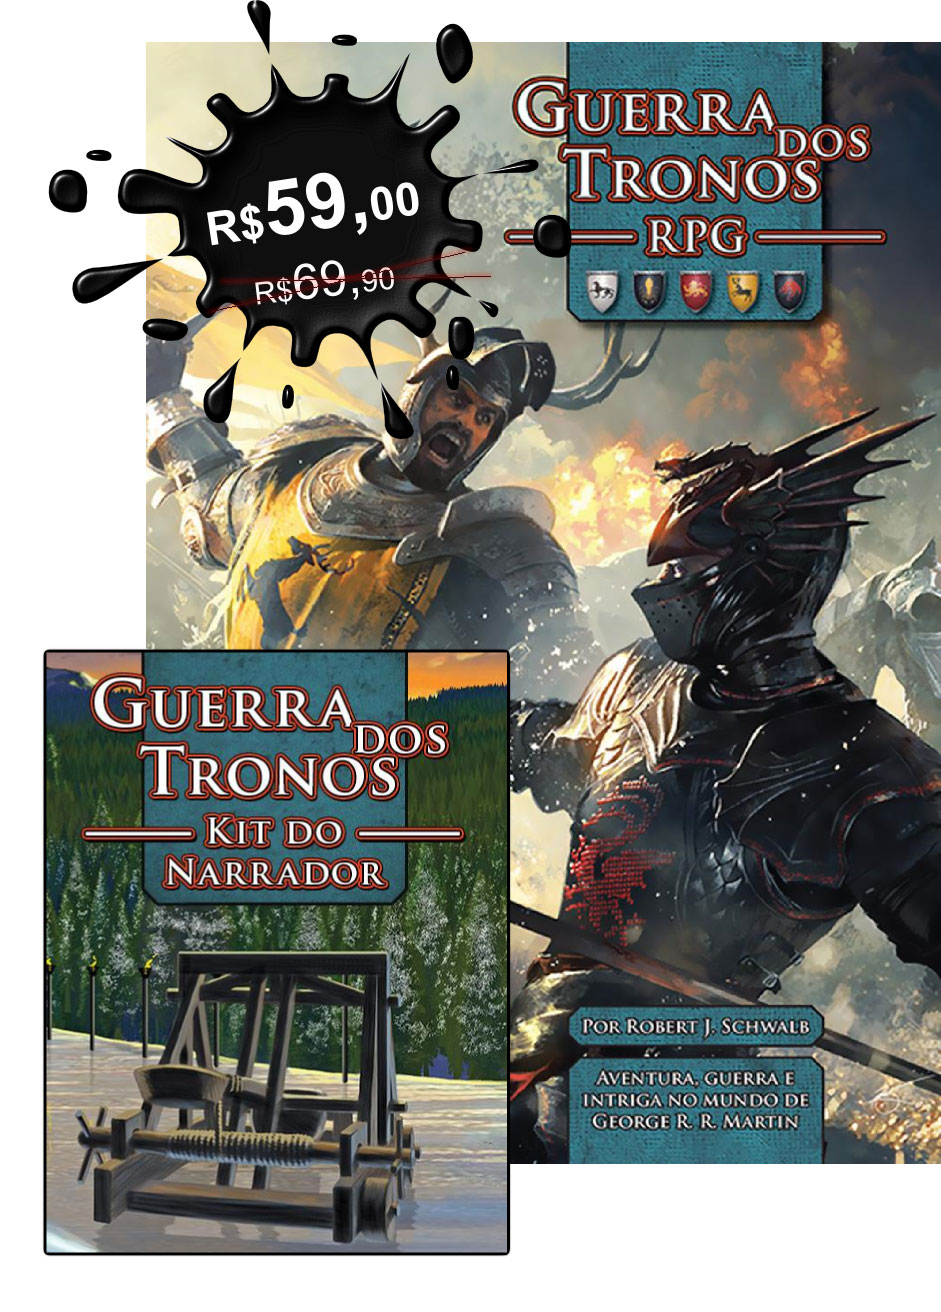 Guerra dos Tronos RPG + Kit do Narrador